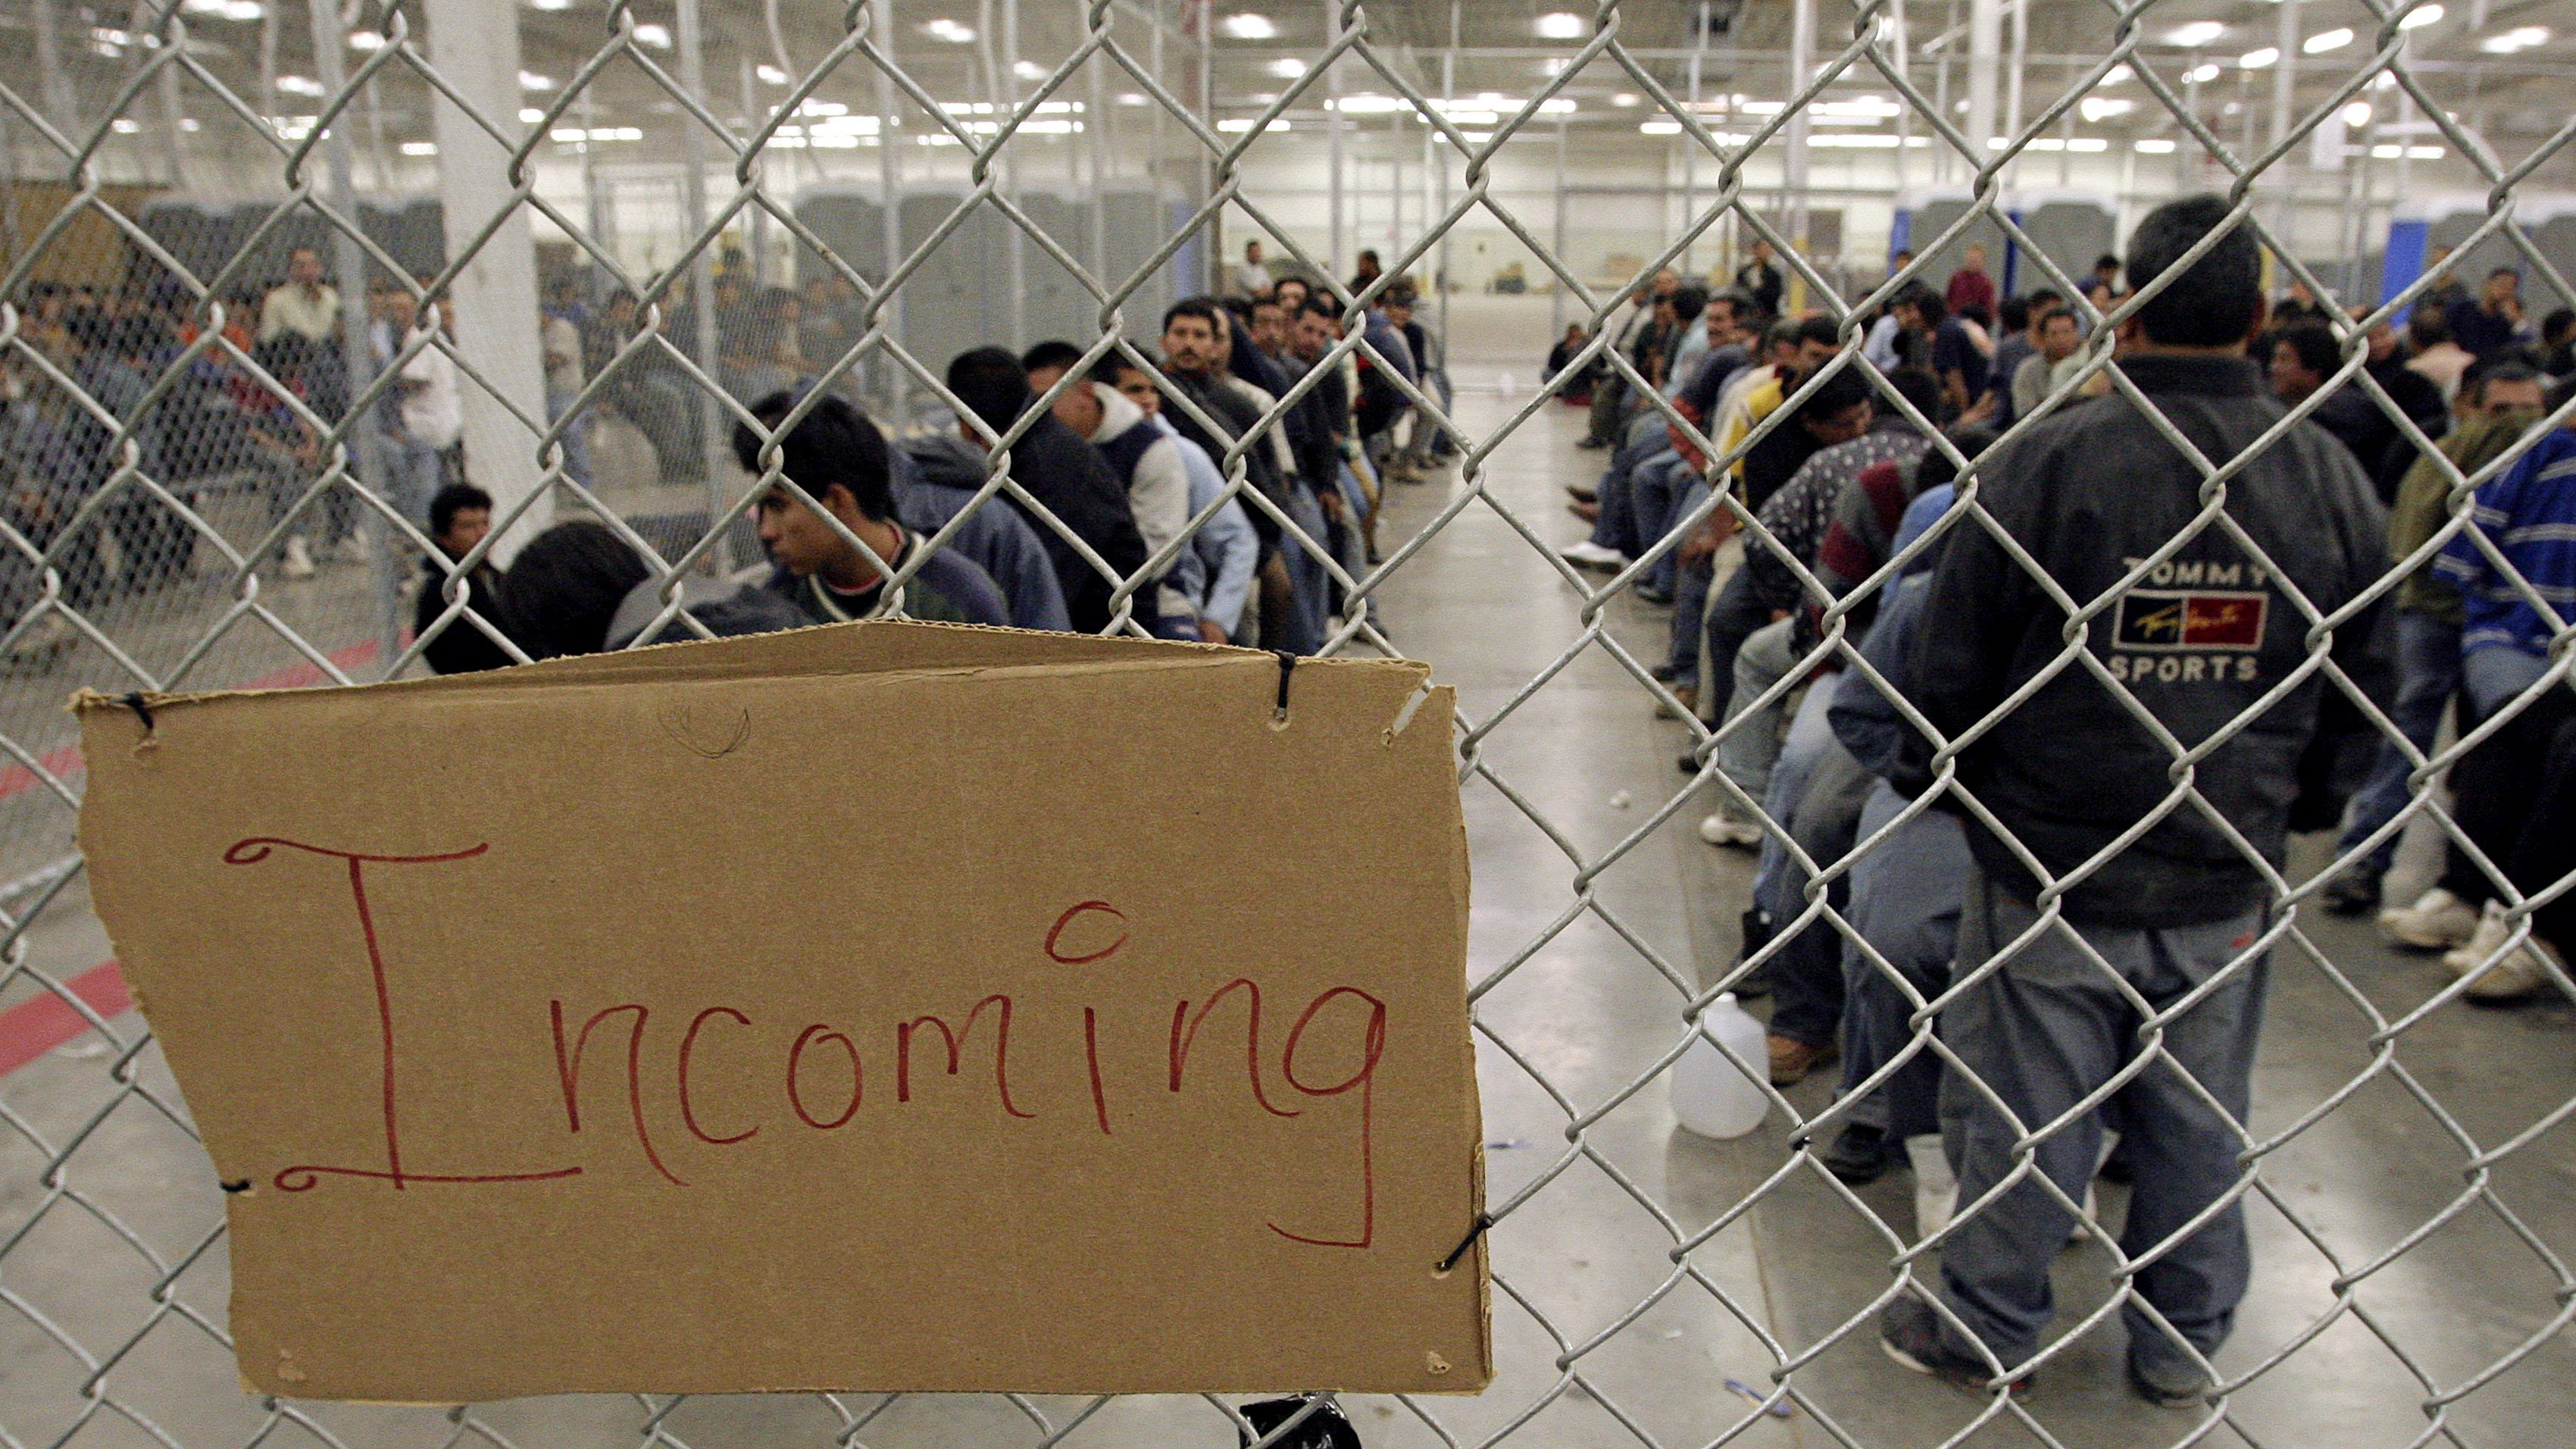 Undocumented immigrants wait in a holding facility after arriving at the U.S. Border Patrol detention center in Nogales, Arizona, May 31, 2006. REUTERS/Jeff Topping - RTR1DYVB